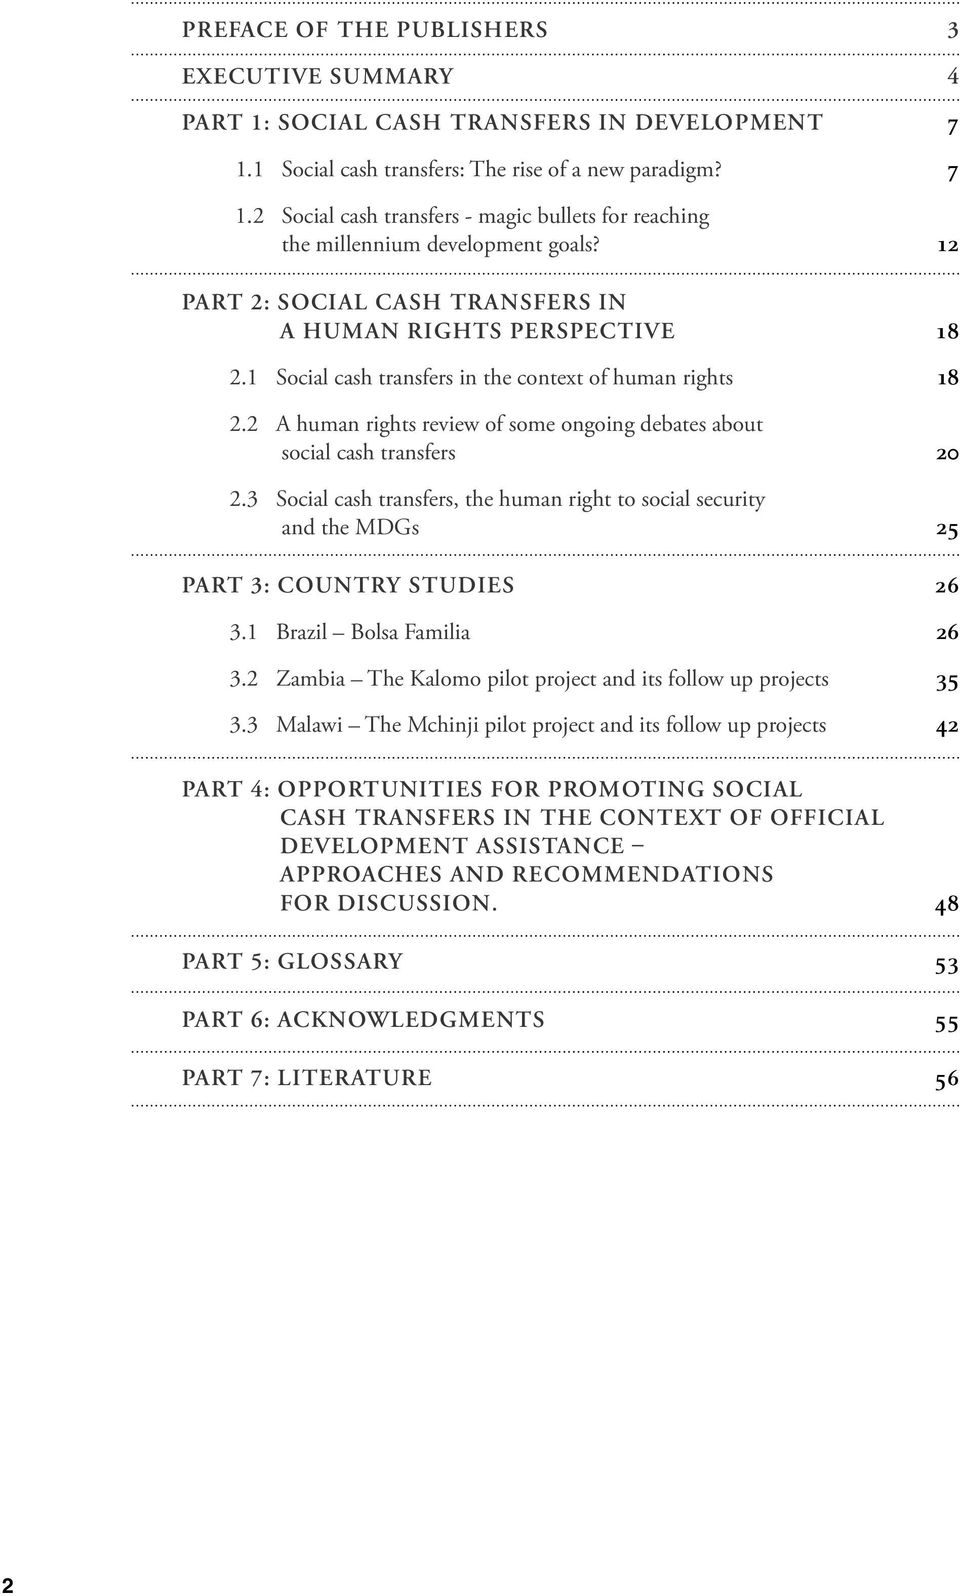 2 A human rights review of some ongoing debates about social cash transfers 20 2.3 Social cash transfers, the human right to social security and the MDGs 25 Part 3: Country studies 26 3.